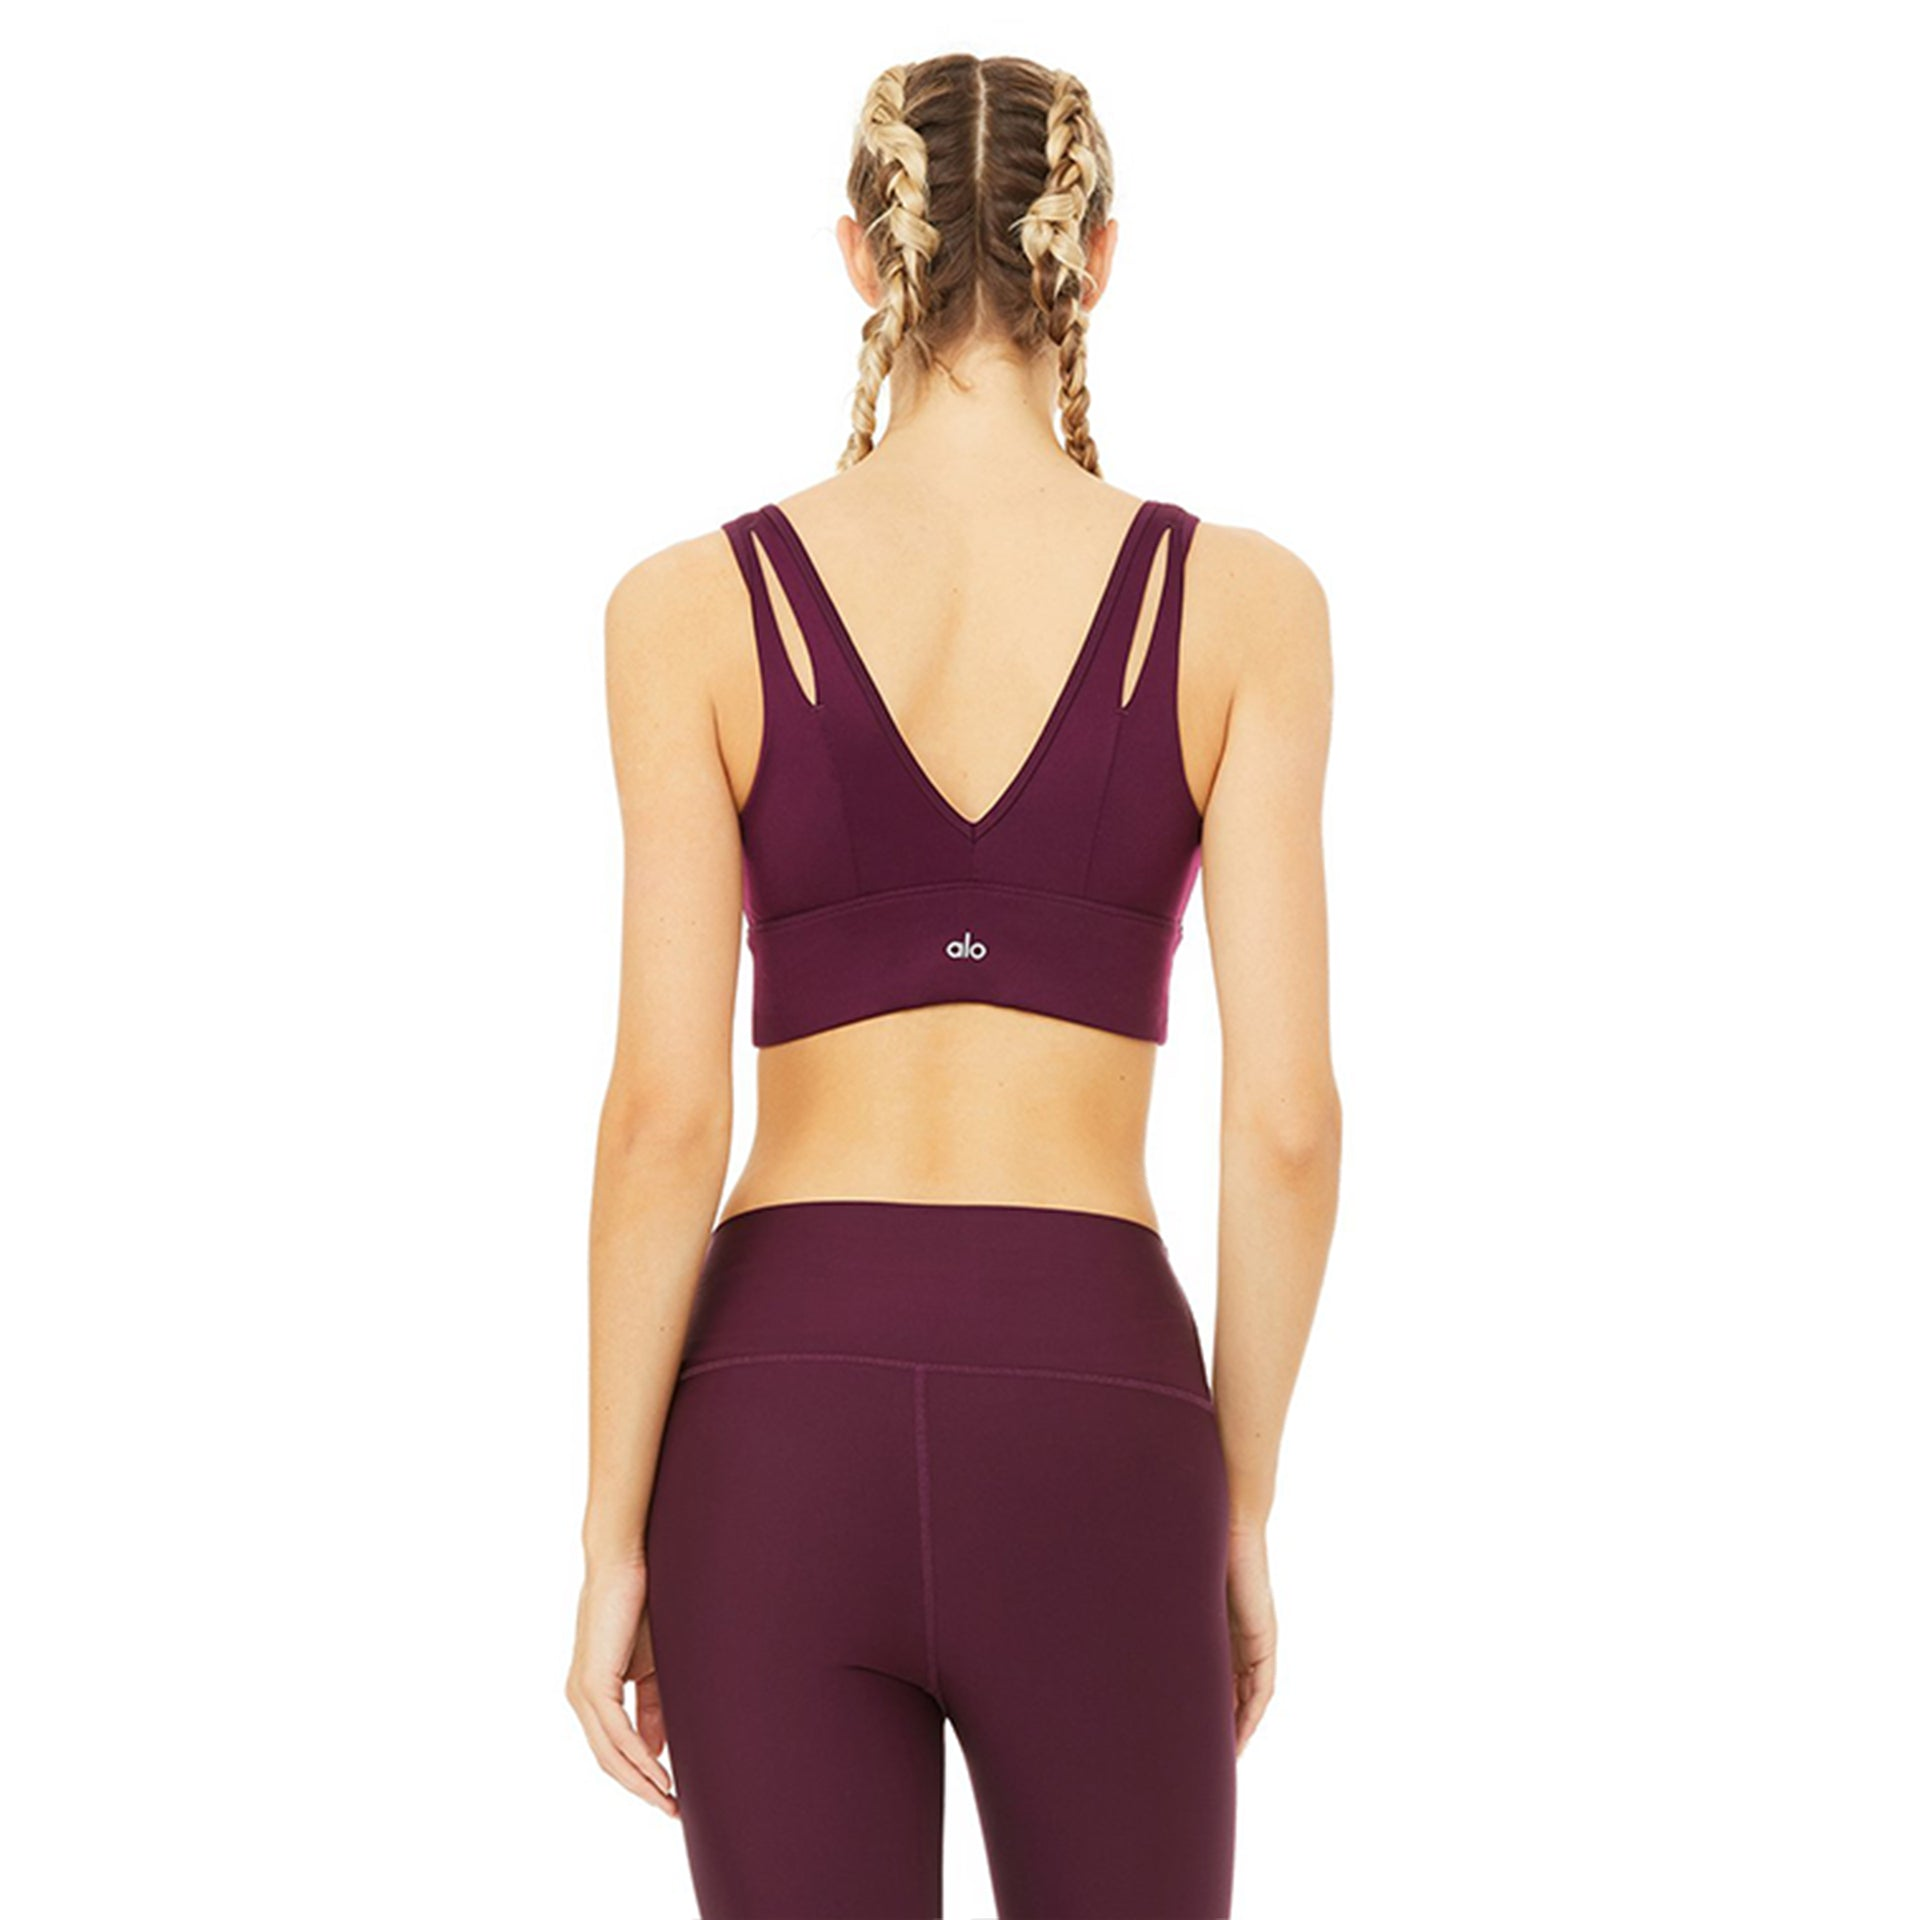 Alo Yoga United Long Bra in Black Plum